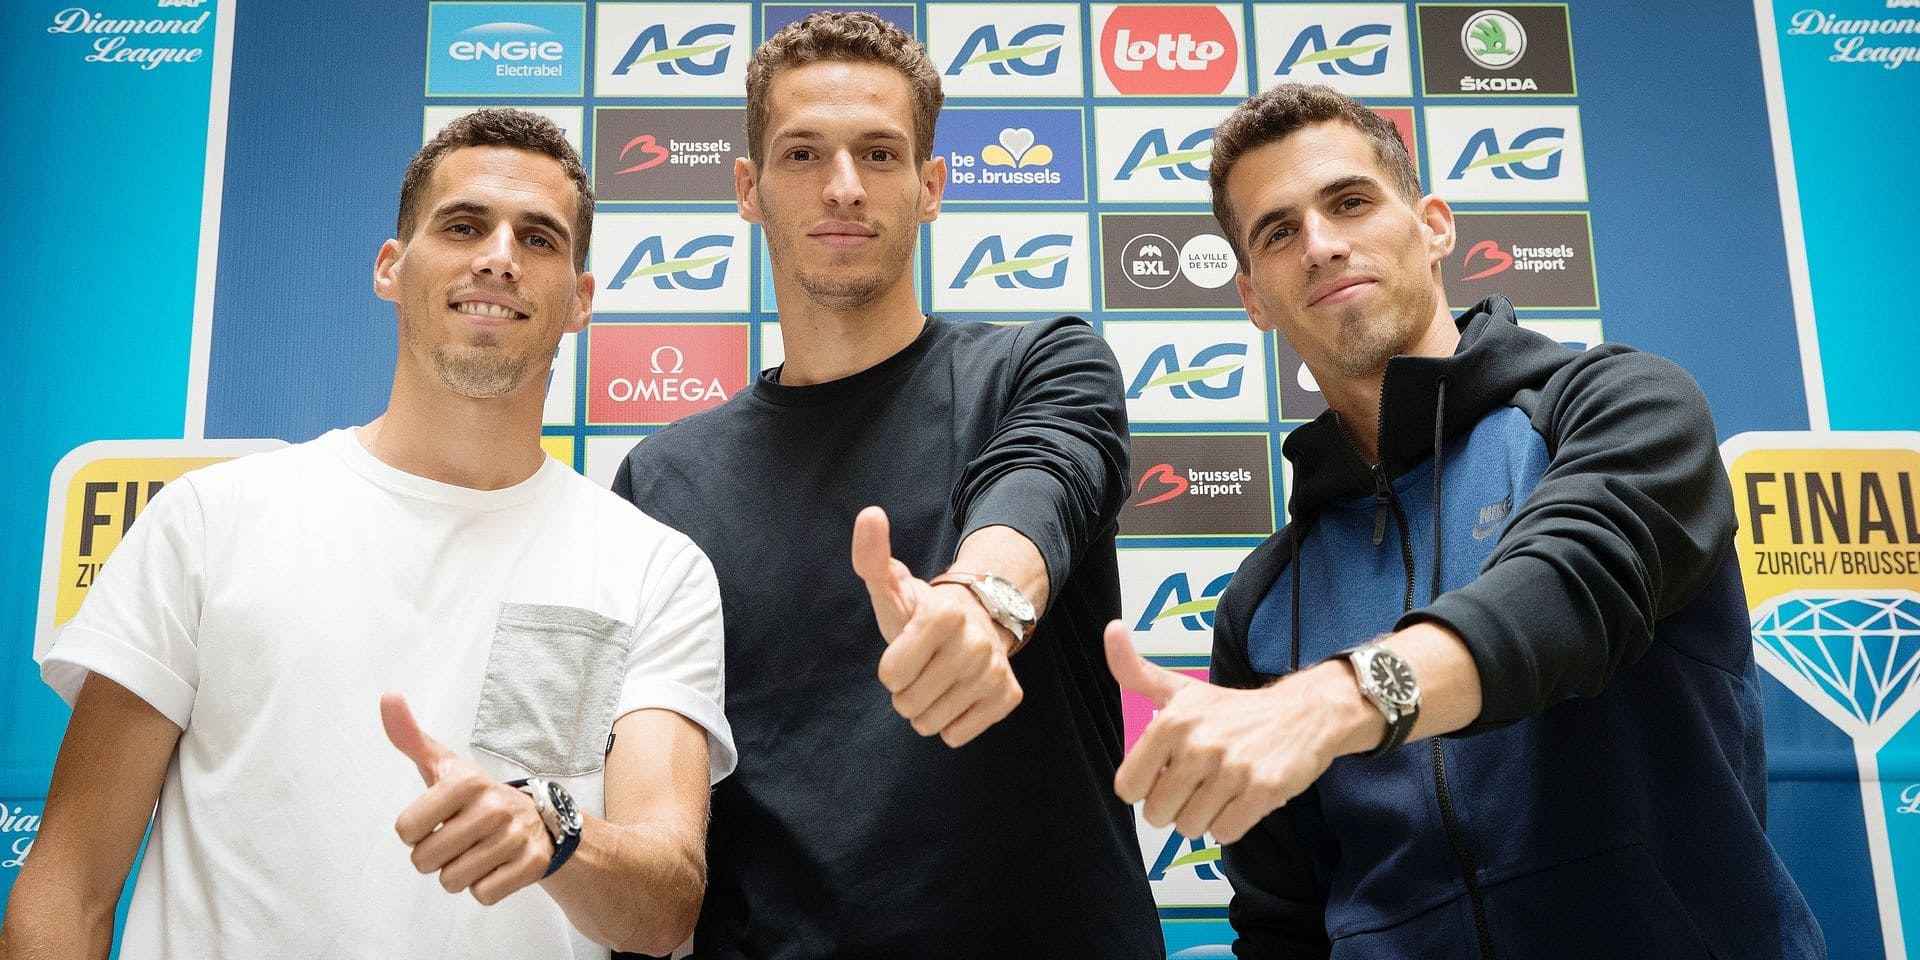 Belgian Kevin, Dylan and Jonathan Borlee pose for the photographer during a press conference regarding the 2018 edition of the Belgacom Memorial Van Damme athletics meeting, Tuesday 28 August 2018 in Brussels. BELGA PHOTO BENOIT DOPPAGNE